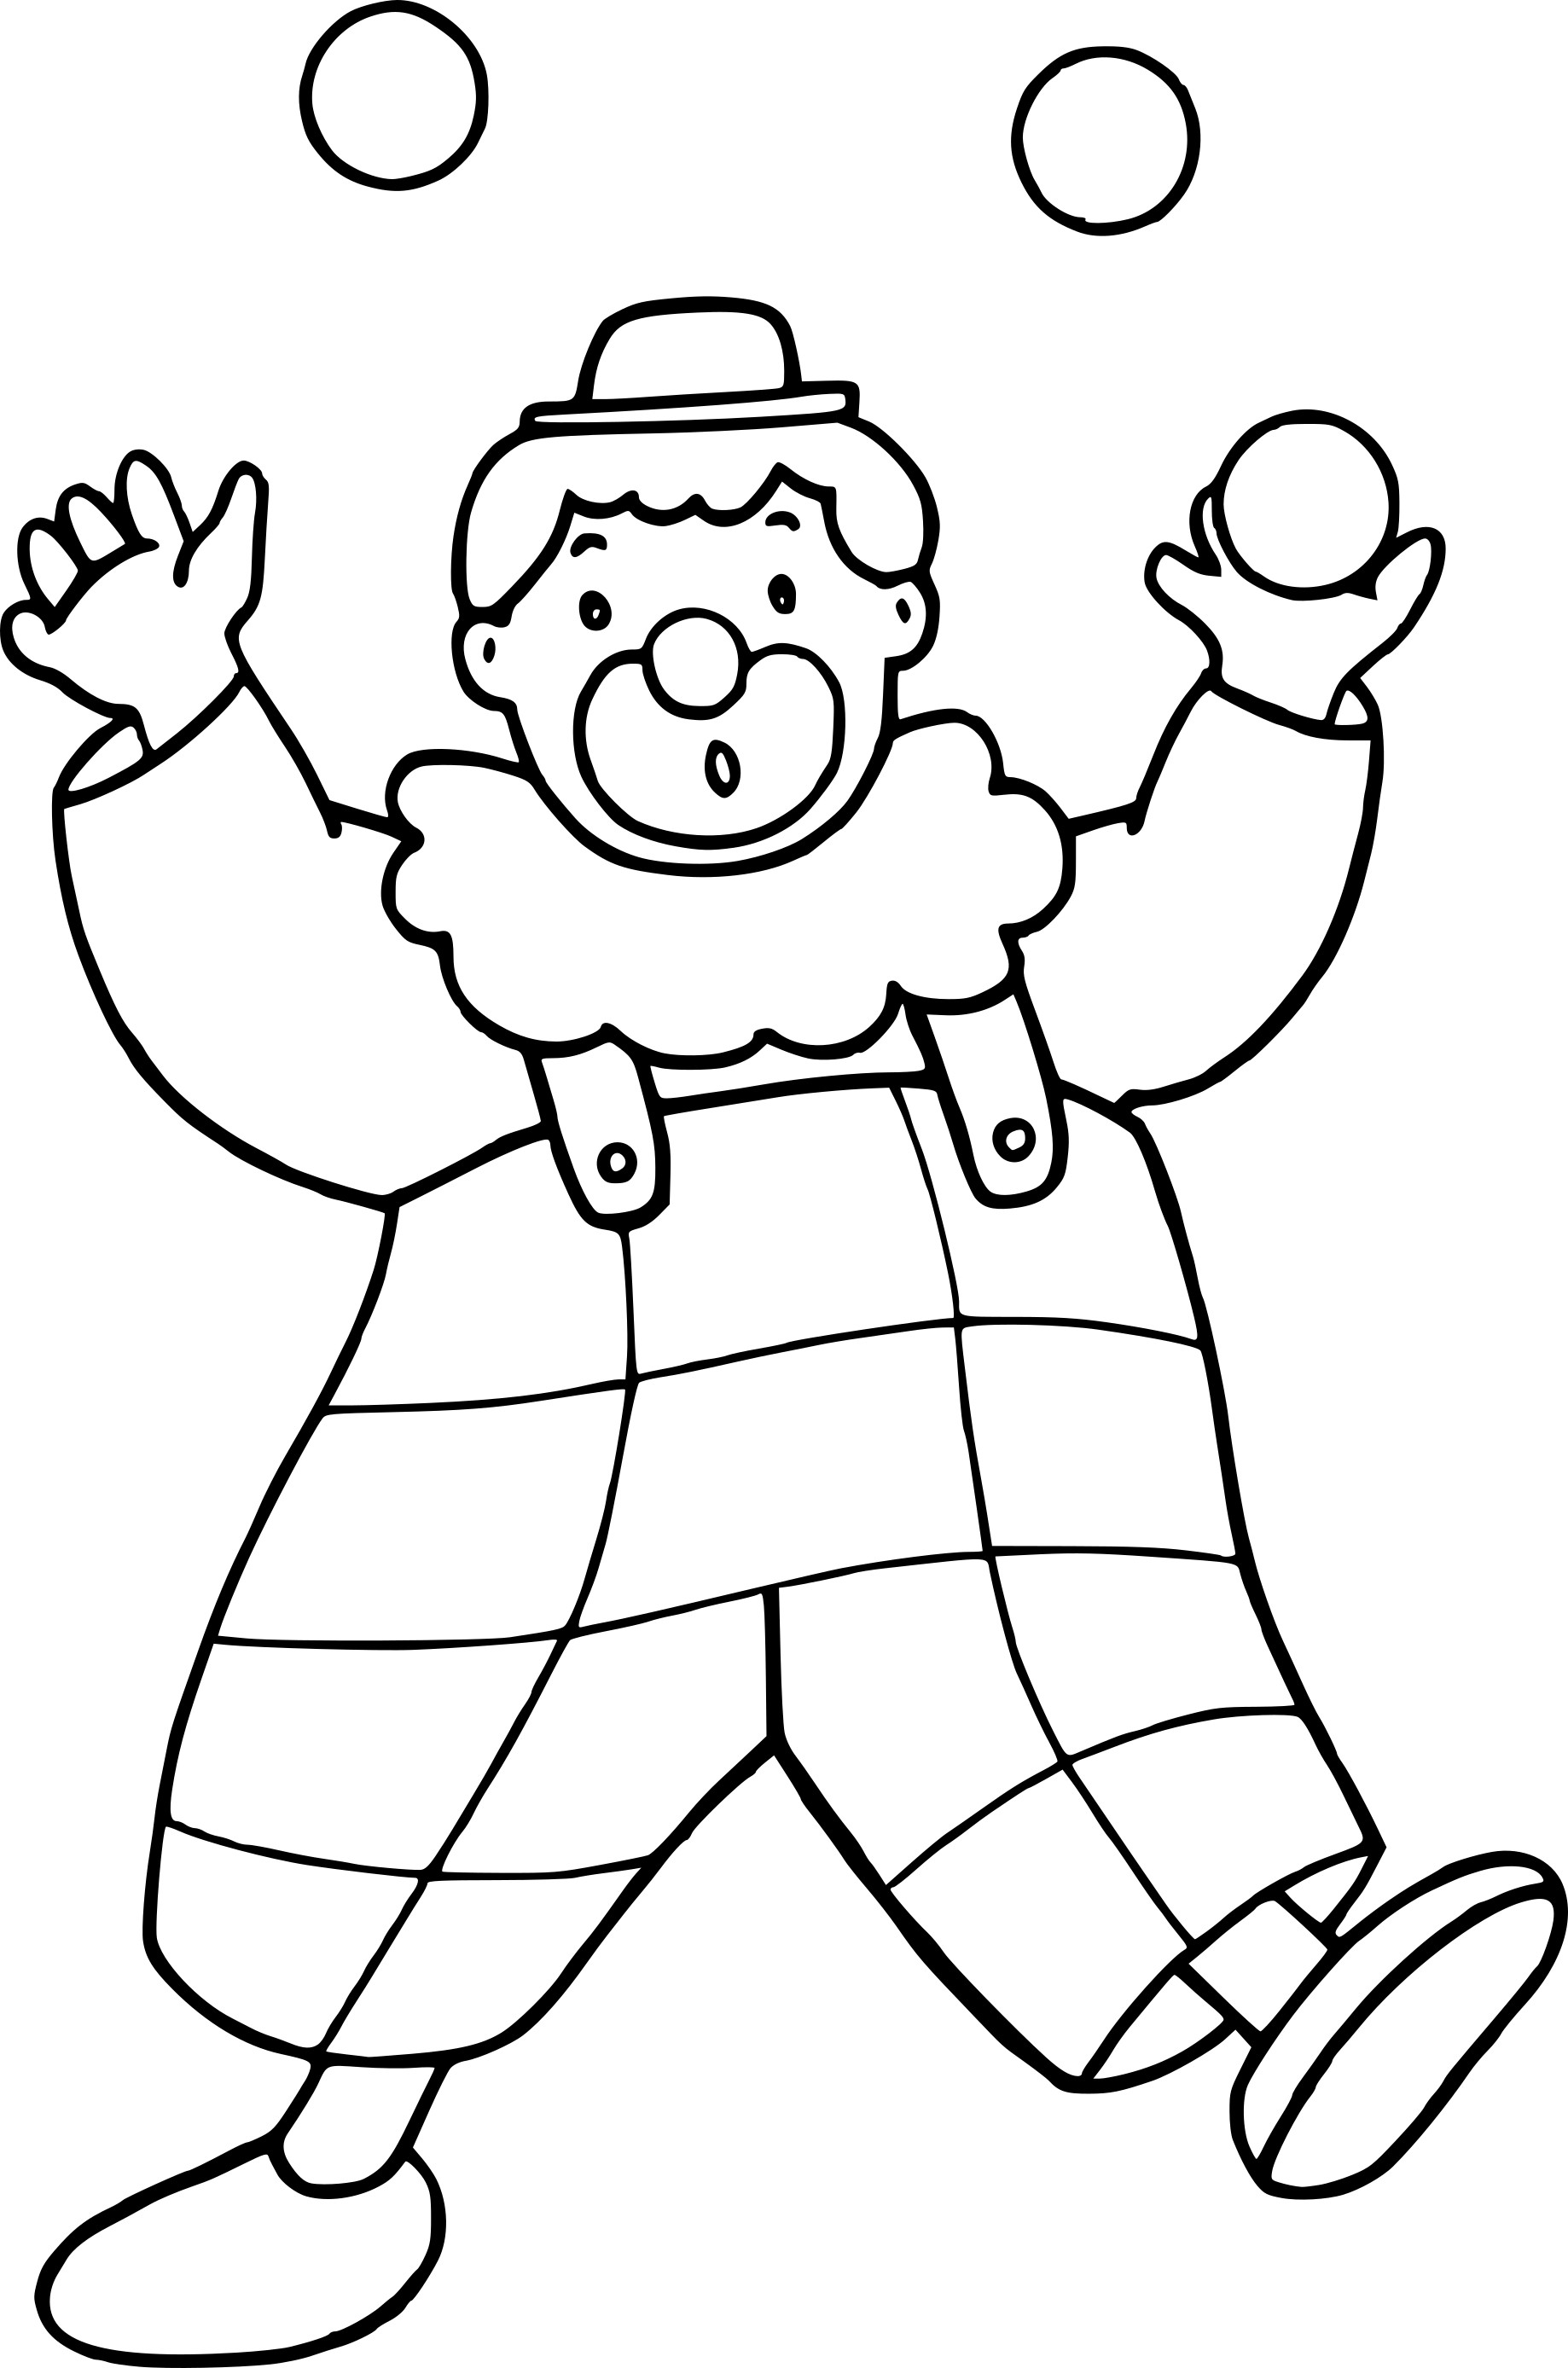 Coloriage Clown Ballon Dessin A Imprimer Sur Coloriages Info